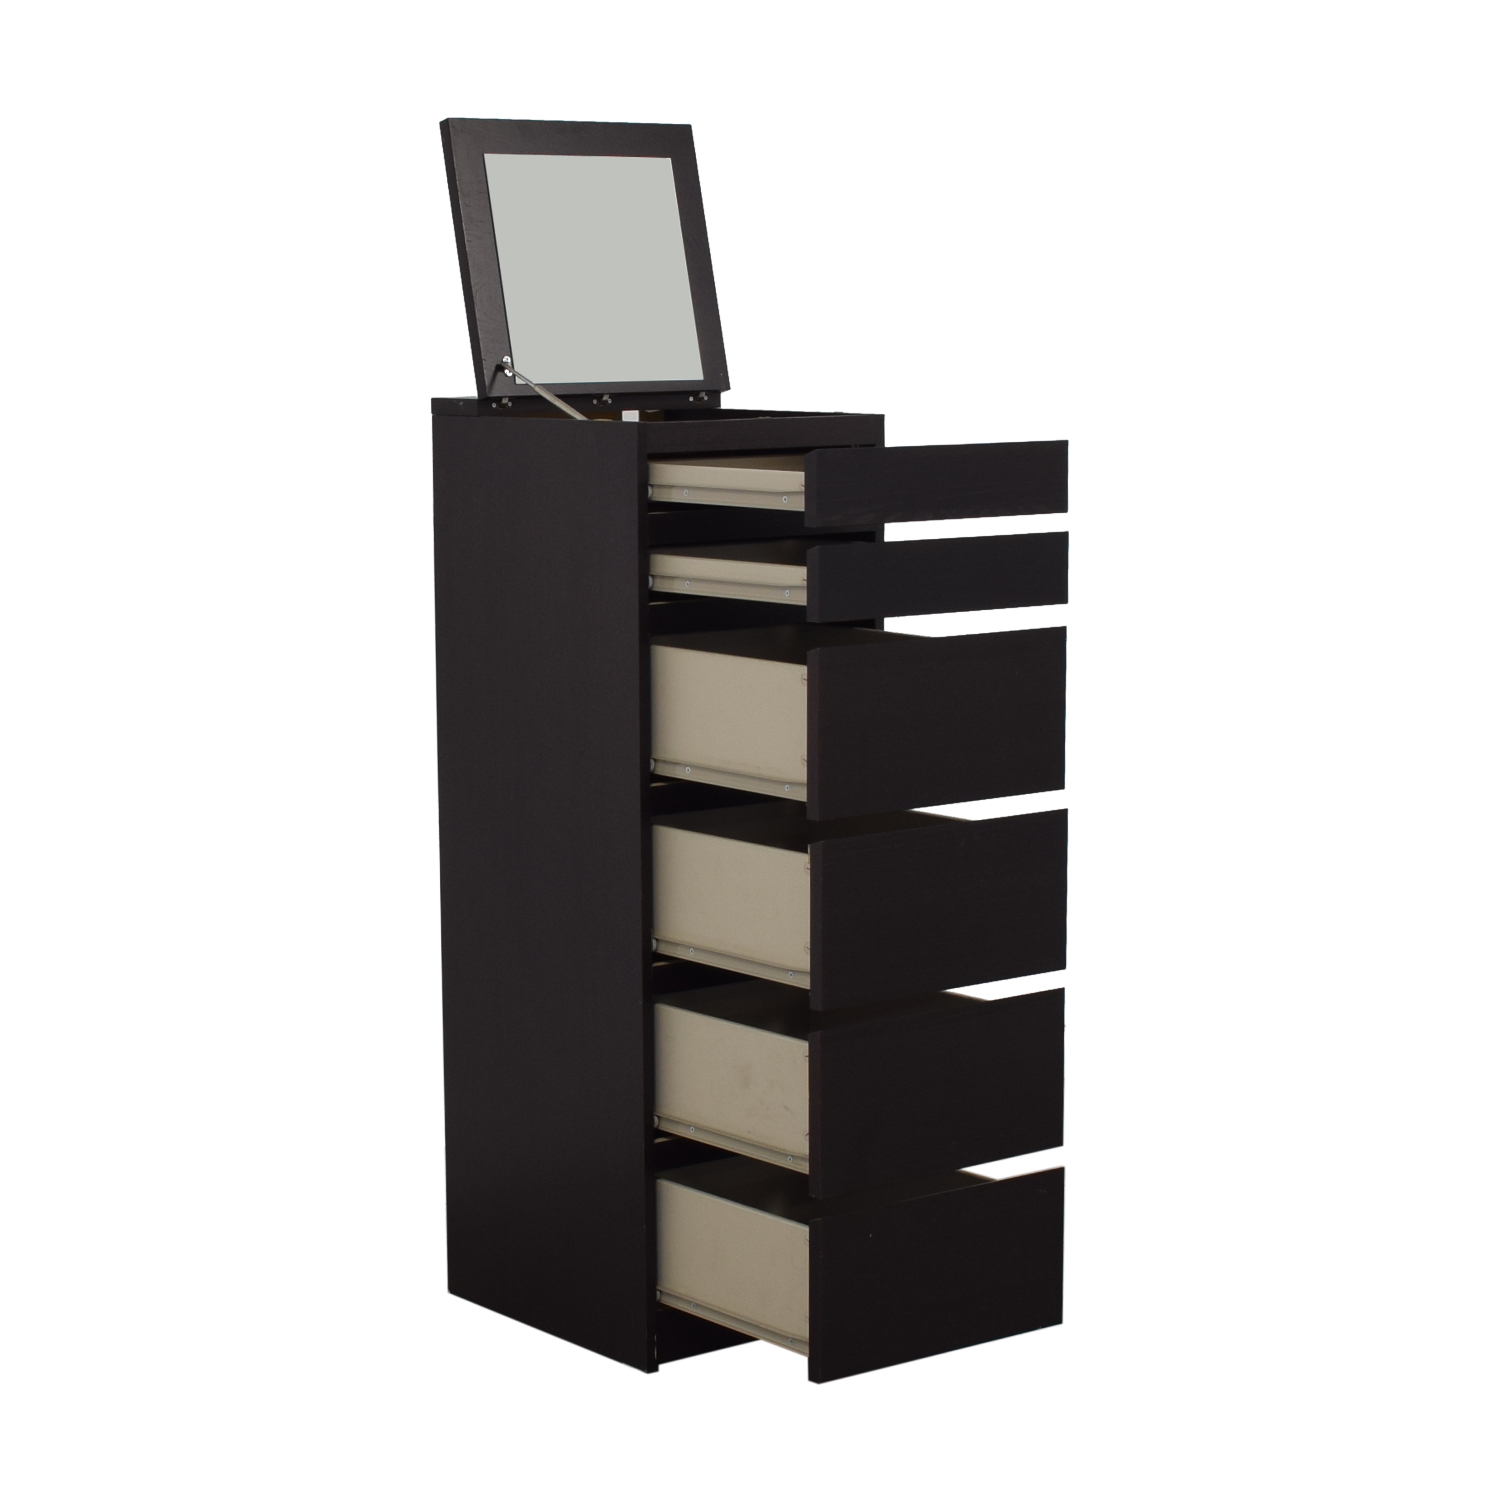 buy  Six-Drawer Lingerie Chest with Mirror online